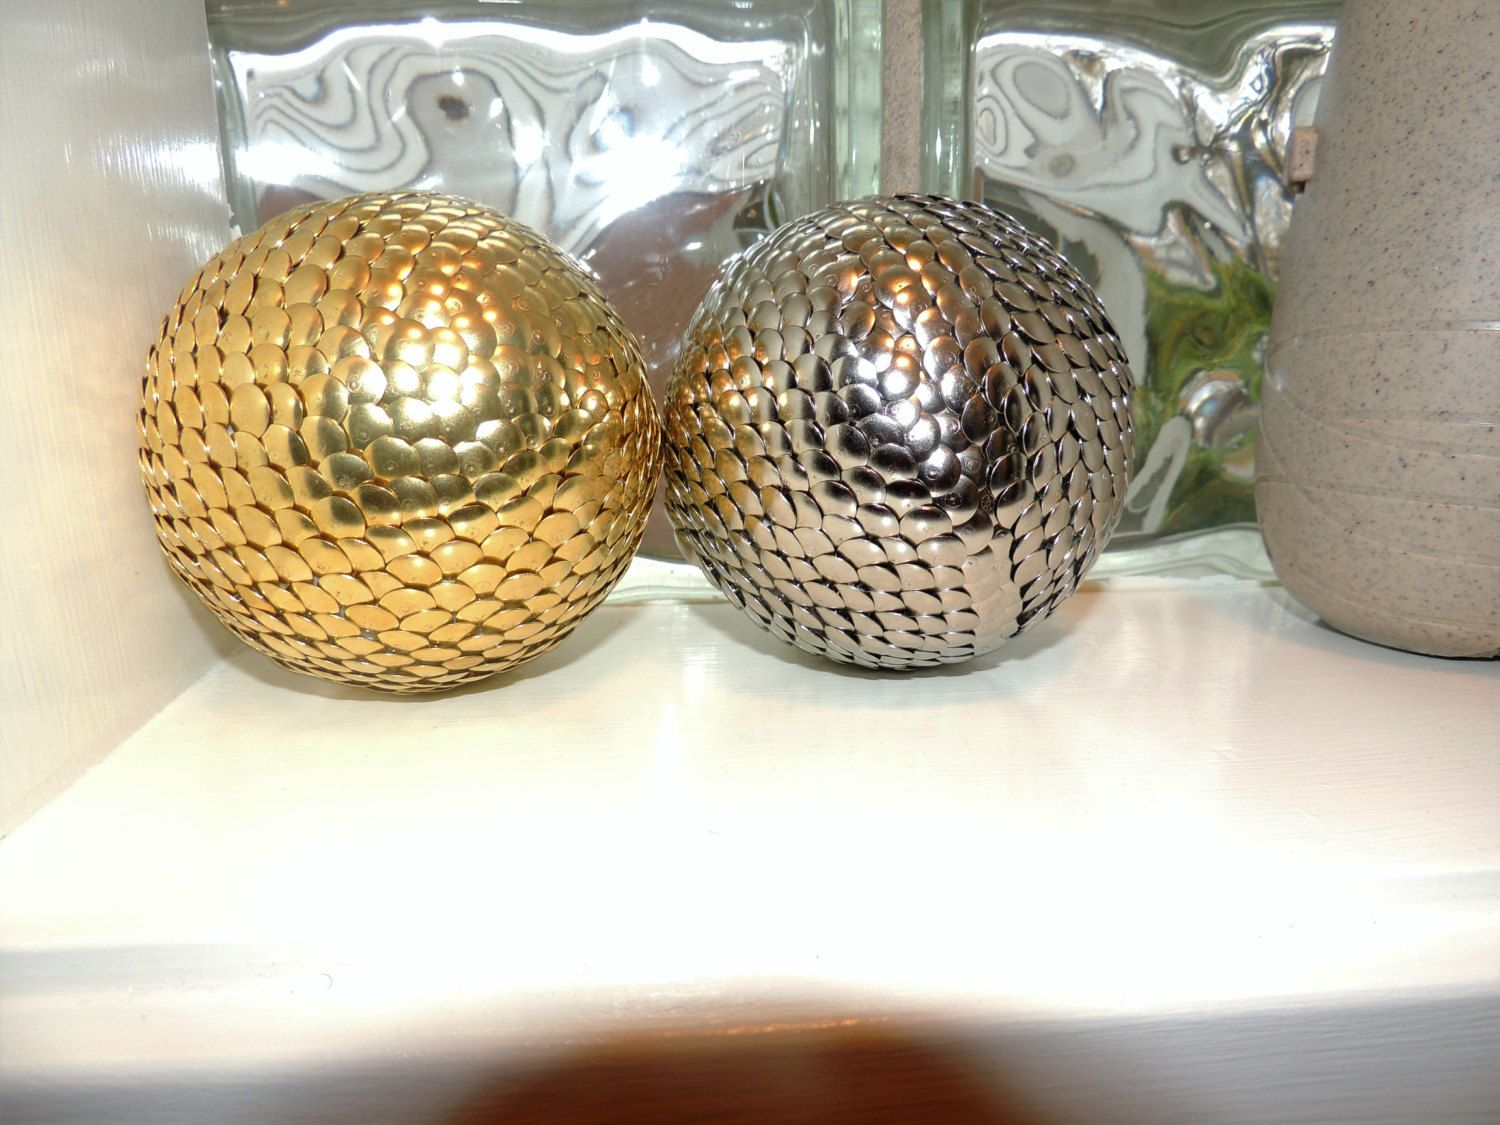 Decorative Bowl Filler Balls Gold And Silver Decorative Ball Vase Filler Gold And Silver Ball